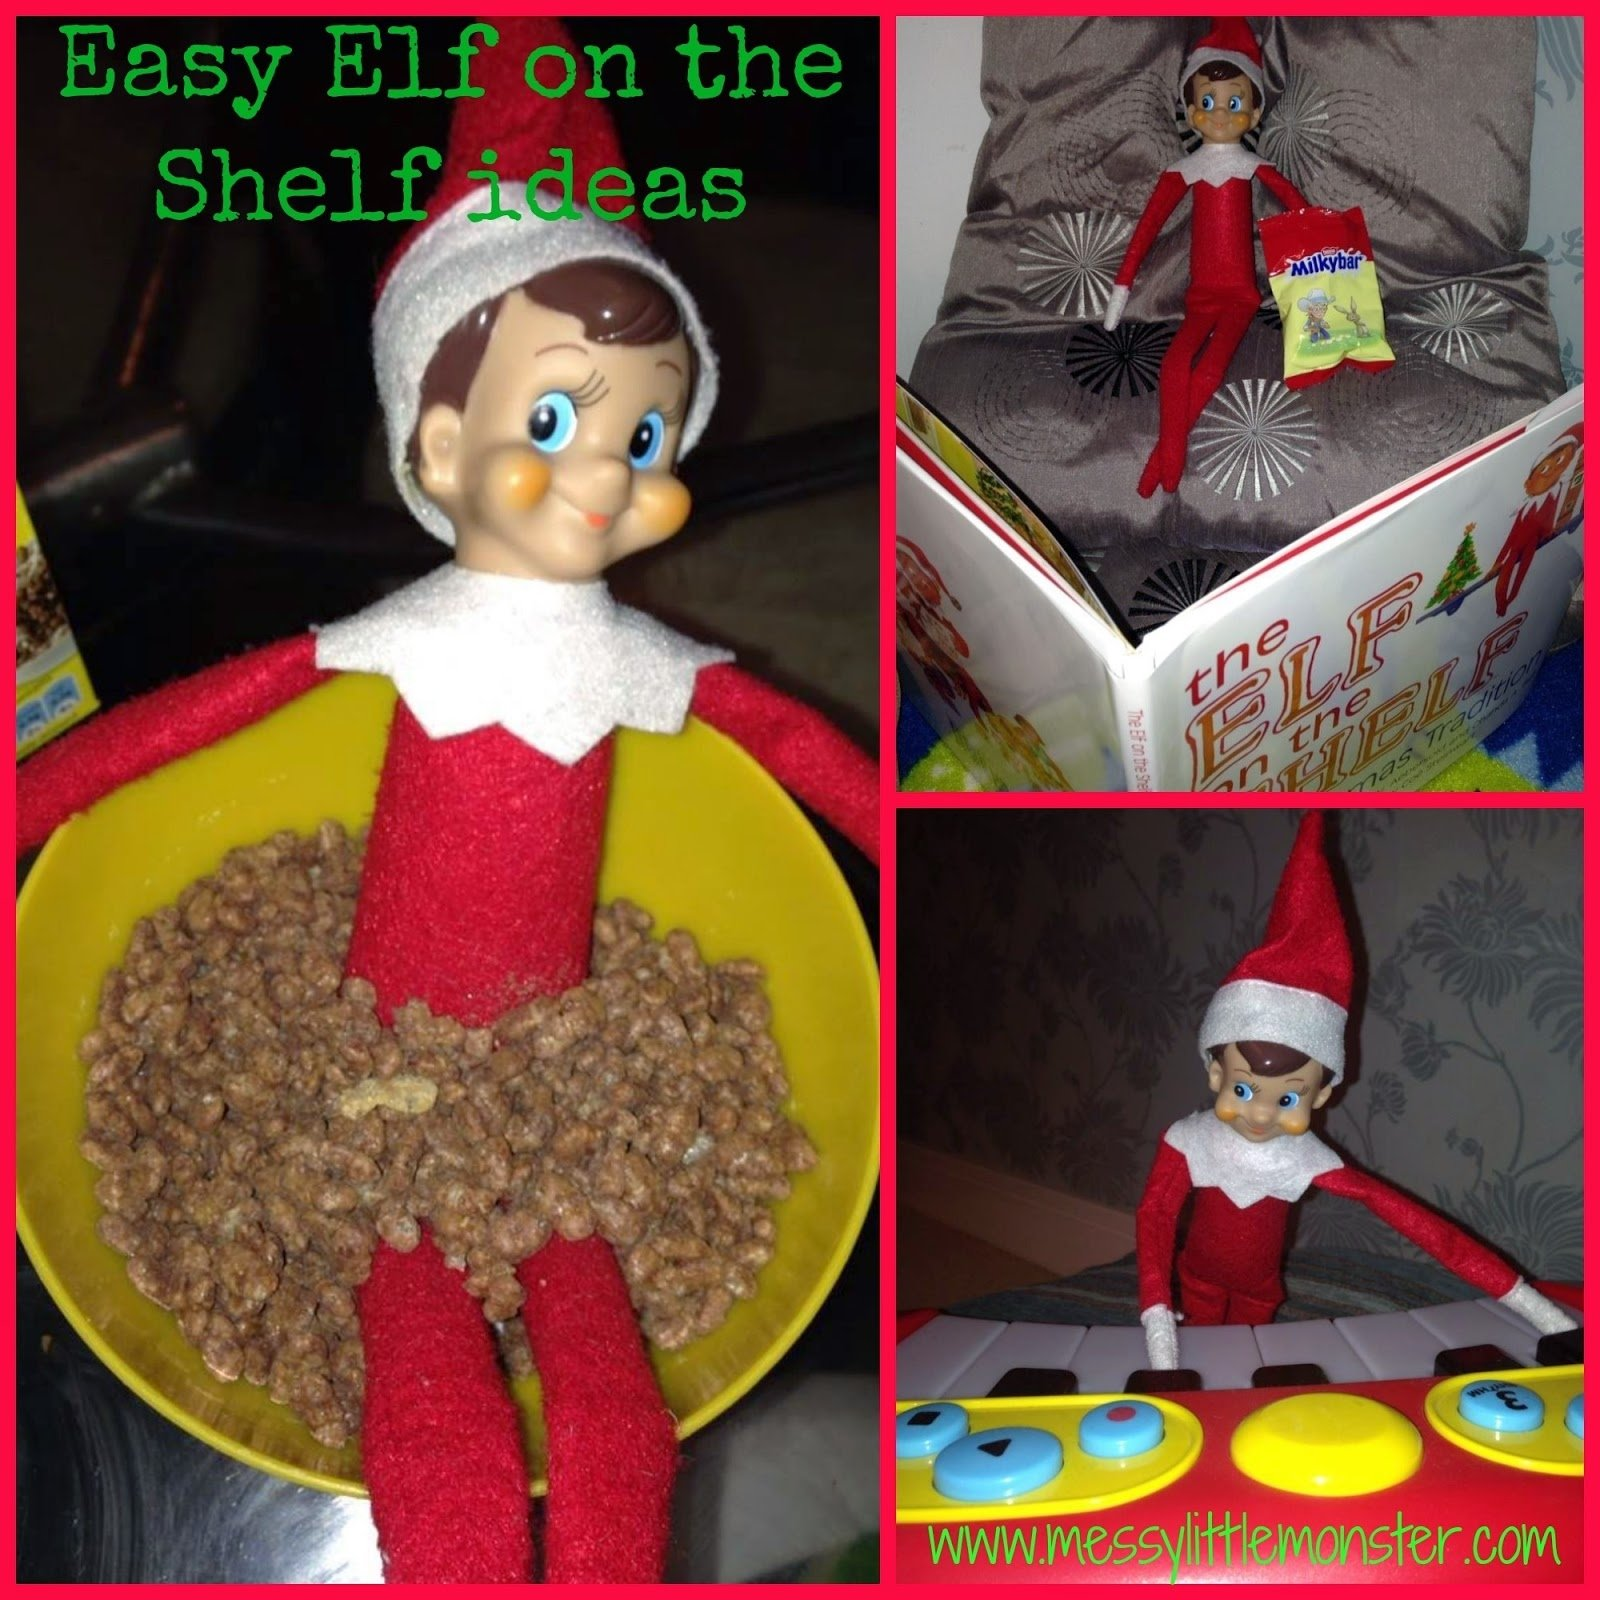 10 Unique Elf On The Self Ideas easy elf on the shelf ideas messy little monster 3 2021